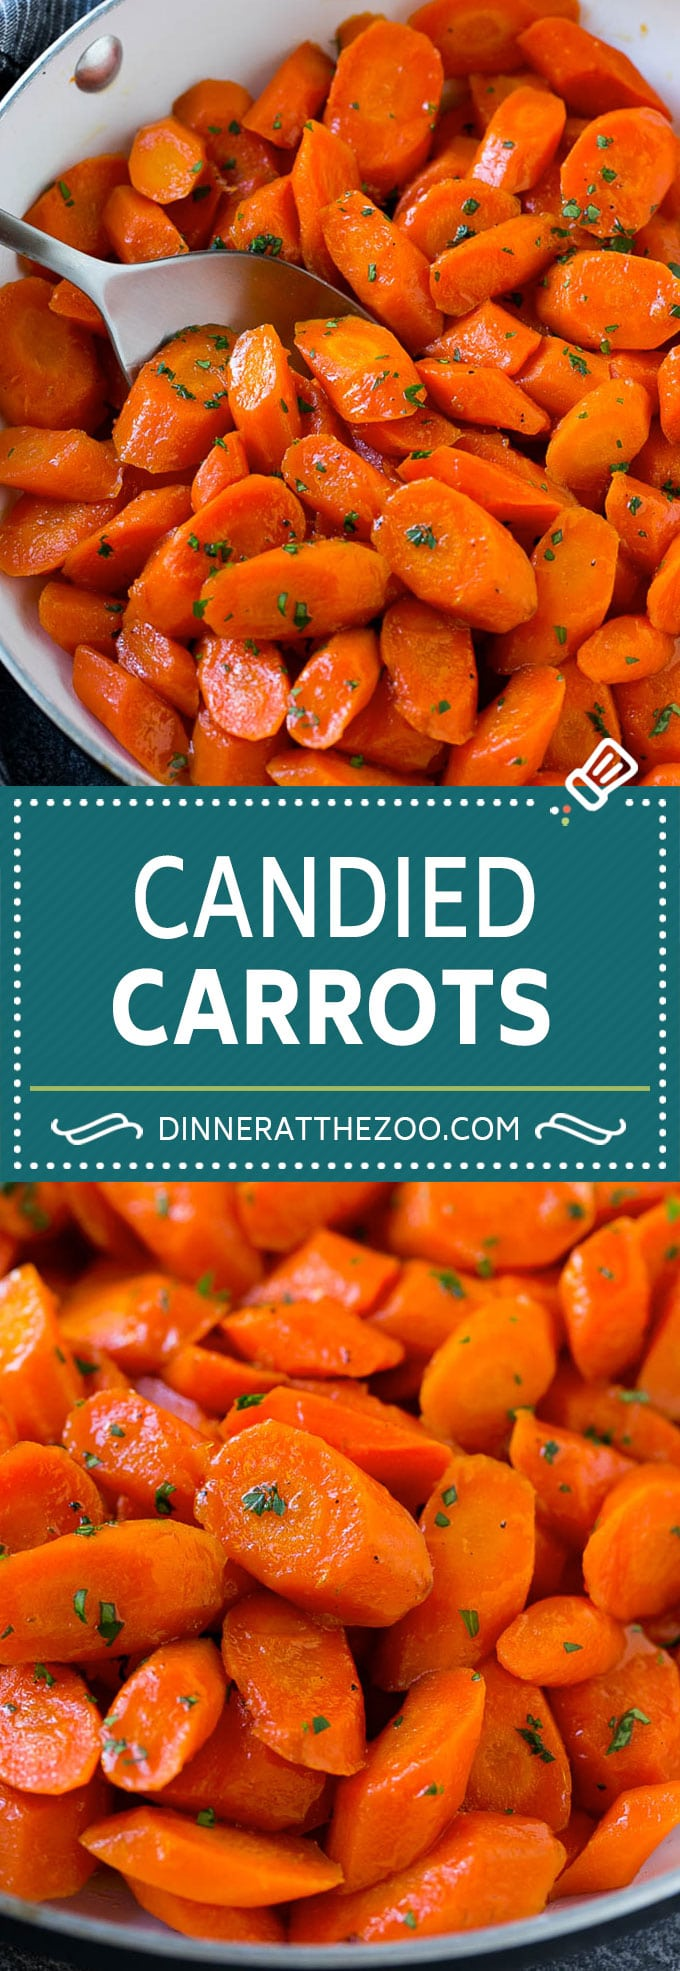 Candied Carrots Recipe | Carrot Side Dish | Brown Sugar Carrots | Glazed Carrots